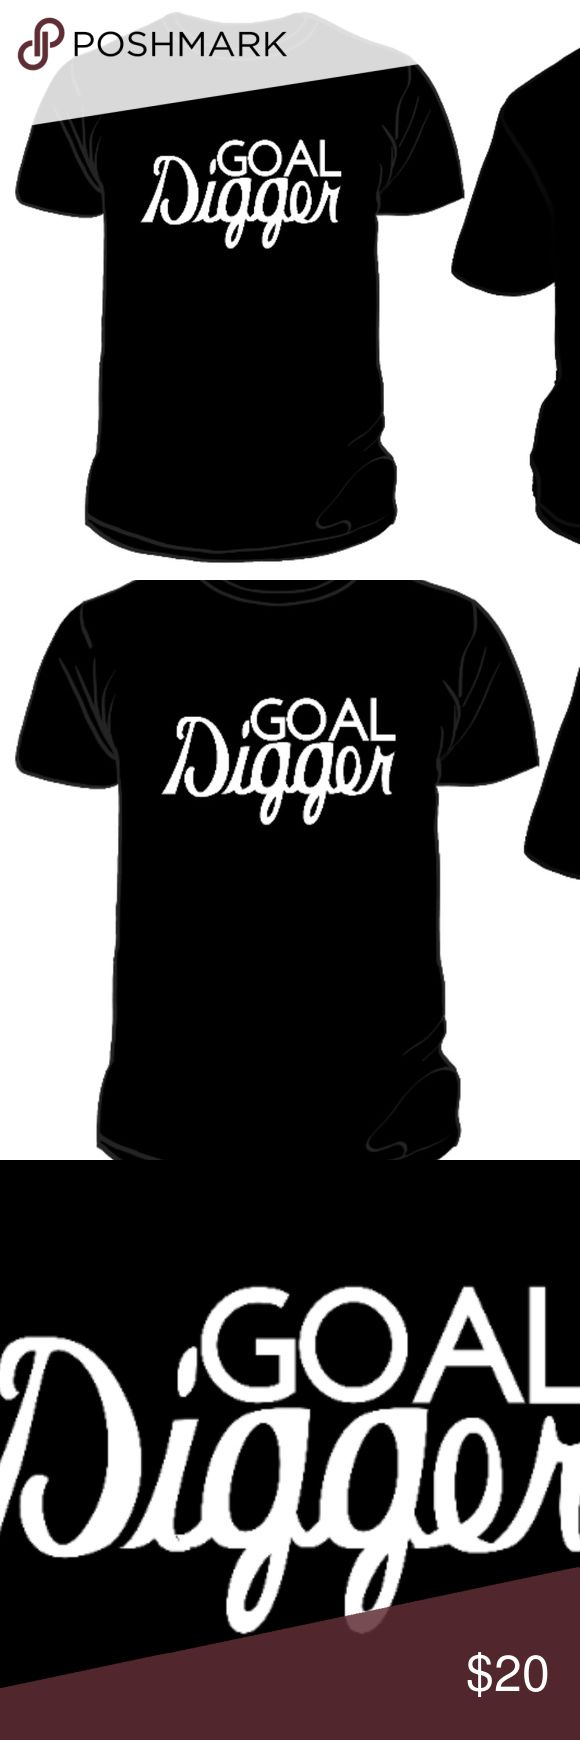 """Reflective Or Glow In the Dark Tee Goal Digger T-Shirt:  - For a snug fit, order one size down. - From dusk to early dawn VISIBL designs are great for biking, jogging, concerts, camping & more! - This design is available as Glow In The Dark, or Reflective. """"Glow In The Dark"""" is the default order unless requested otherwise when purchased. - Reflective designs meet most ANSI standards for retro-reflectivity, meaning the design reflects light back to the light source.  - Reflective designs can…"""